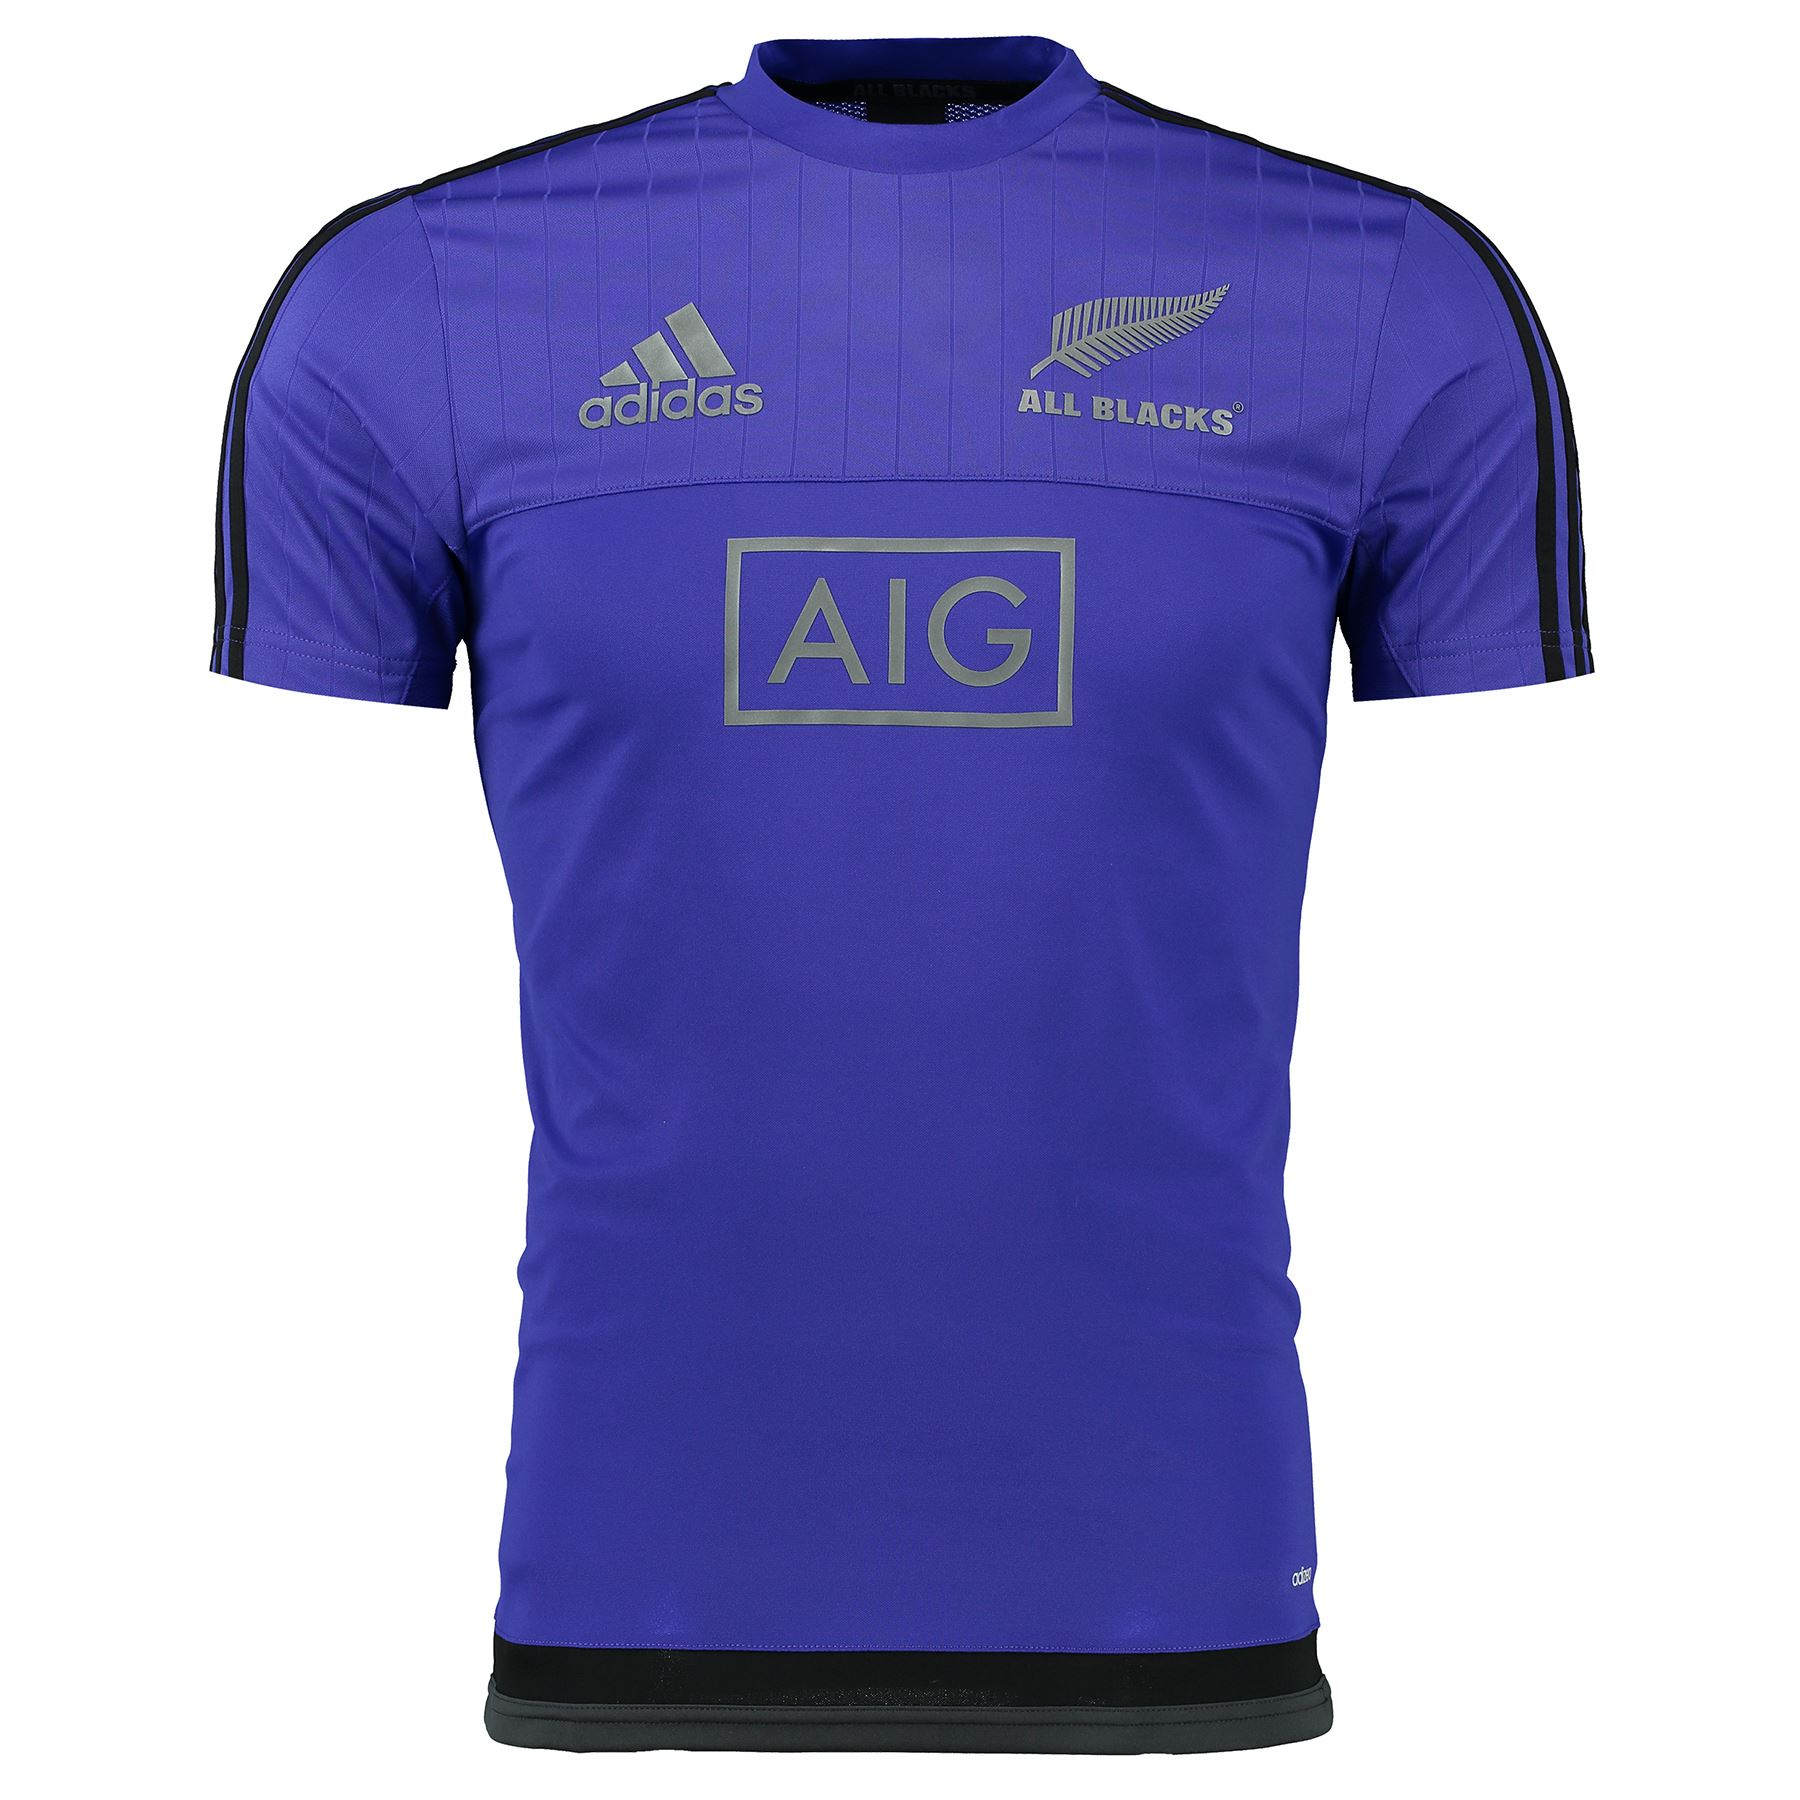 adidas mens all blacks rugby perf short sleeve training t shirt top tee purple ebay. Black Bedroom Furniture Sets. Home Design Ideas